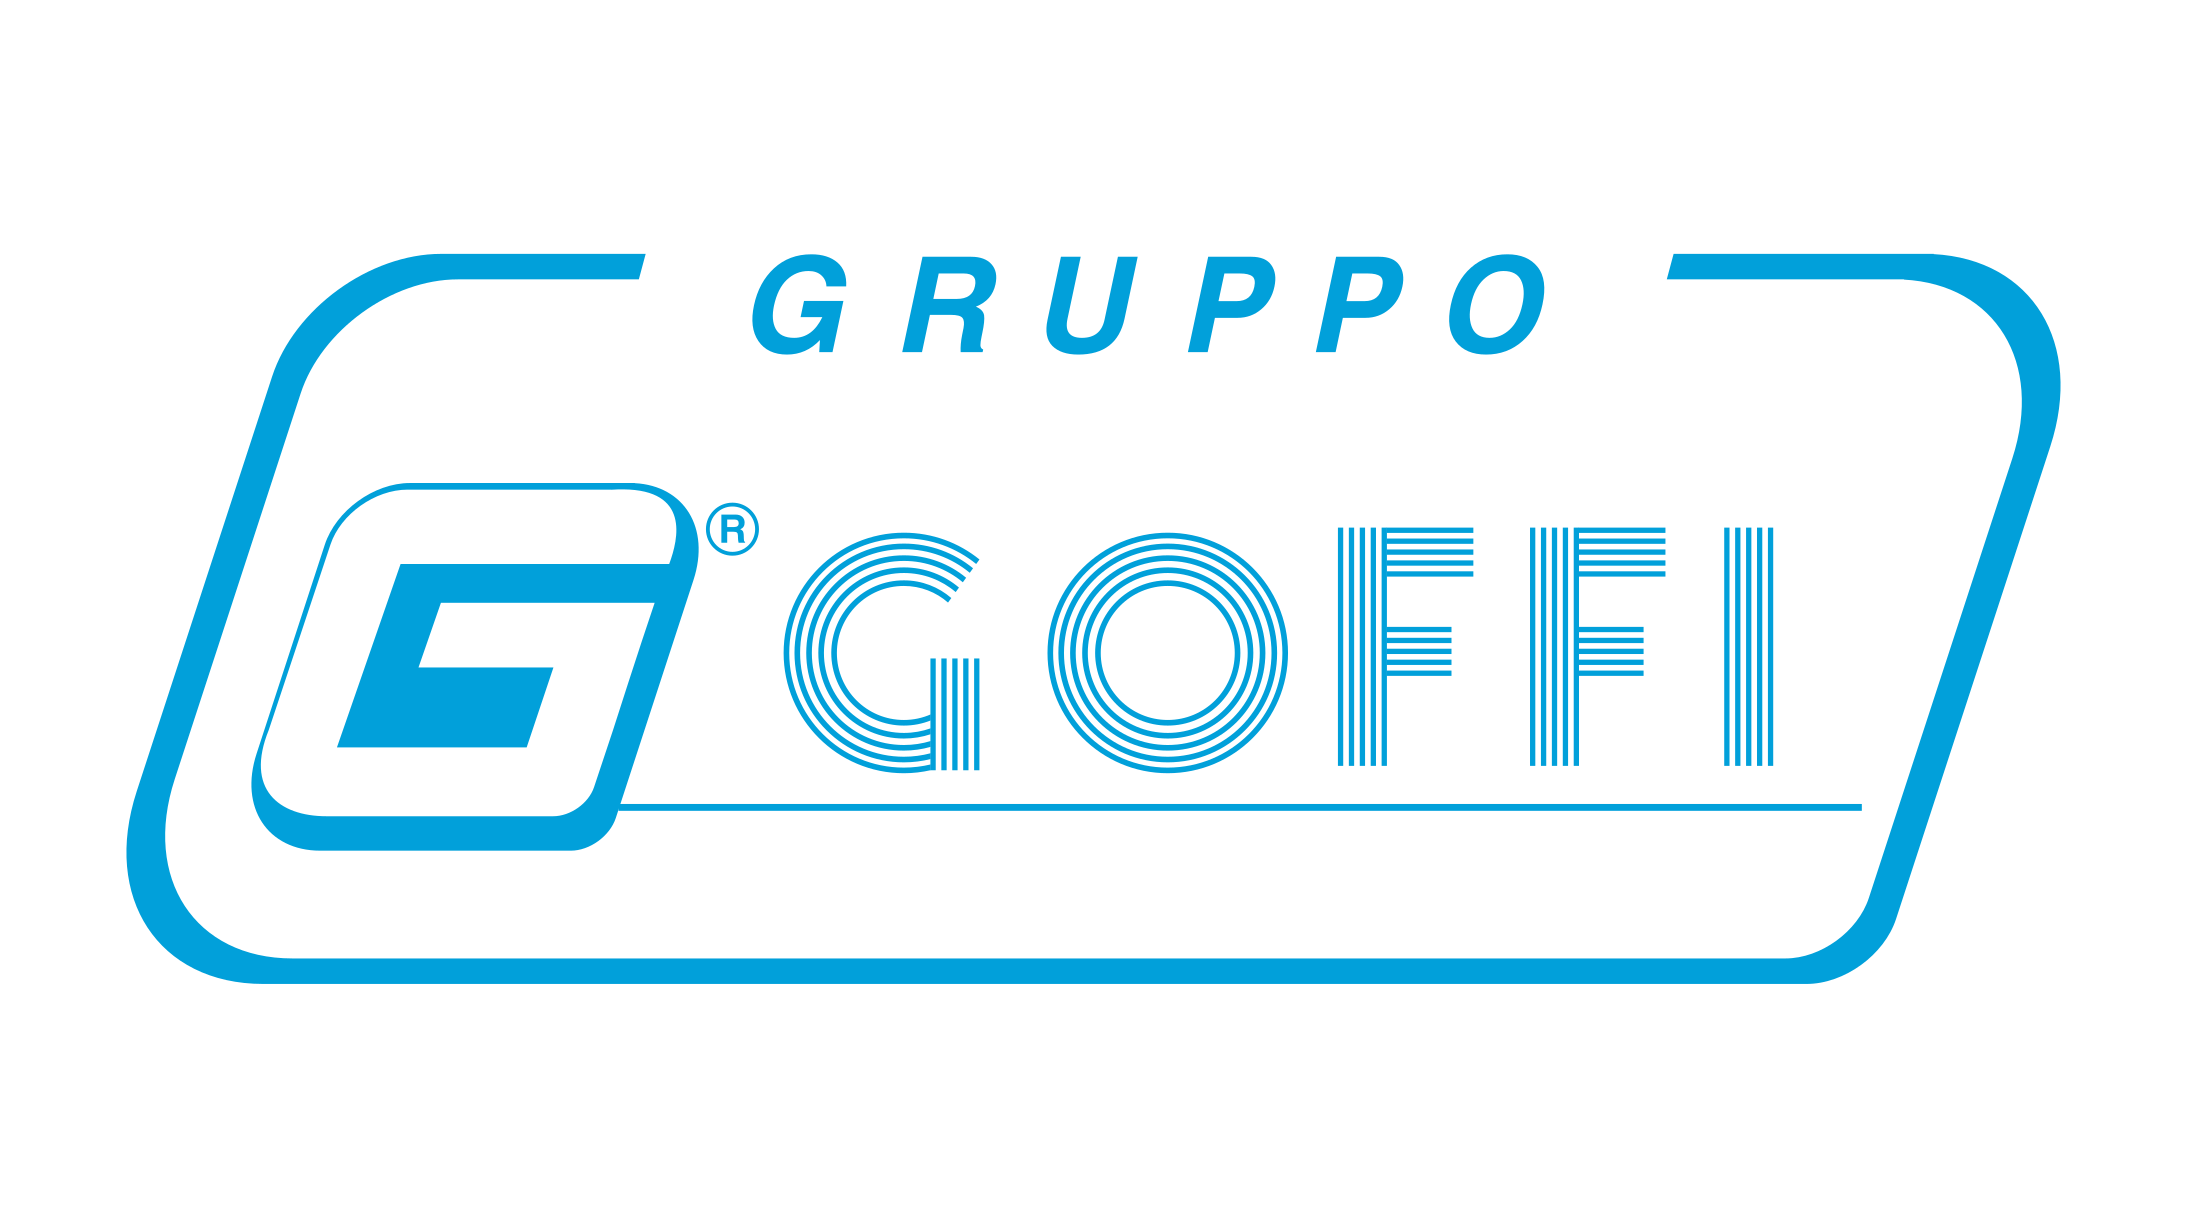 Evolution of the logo - Goffi Company Logo